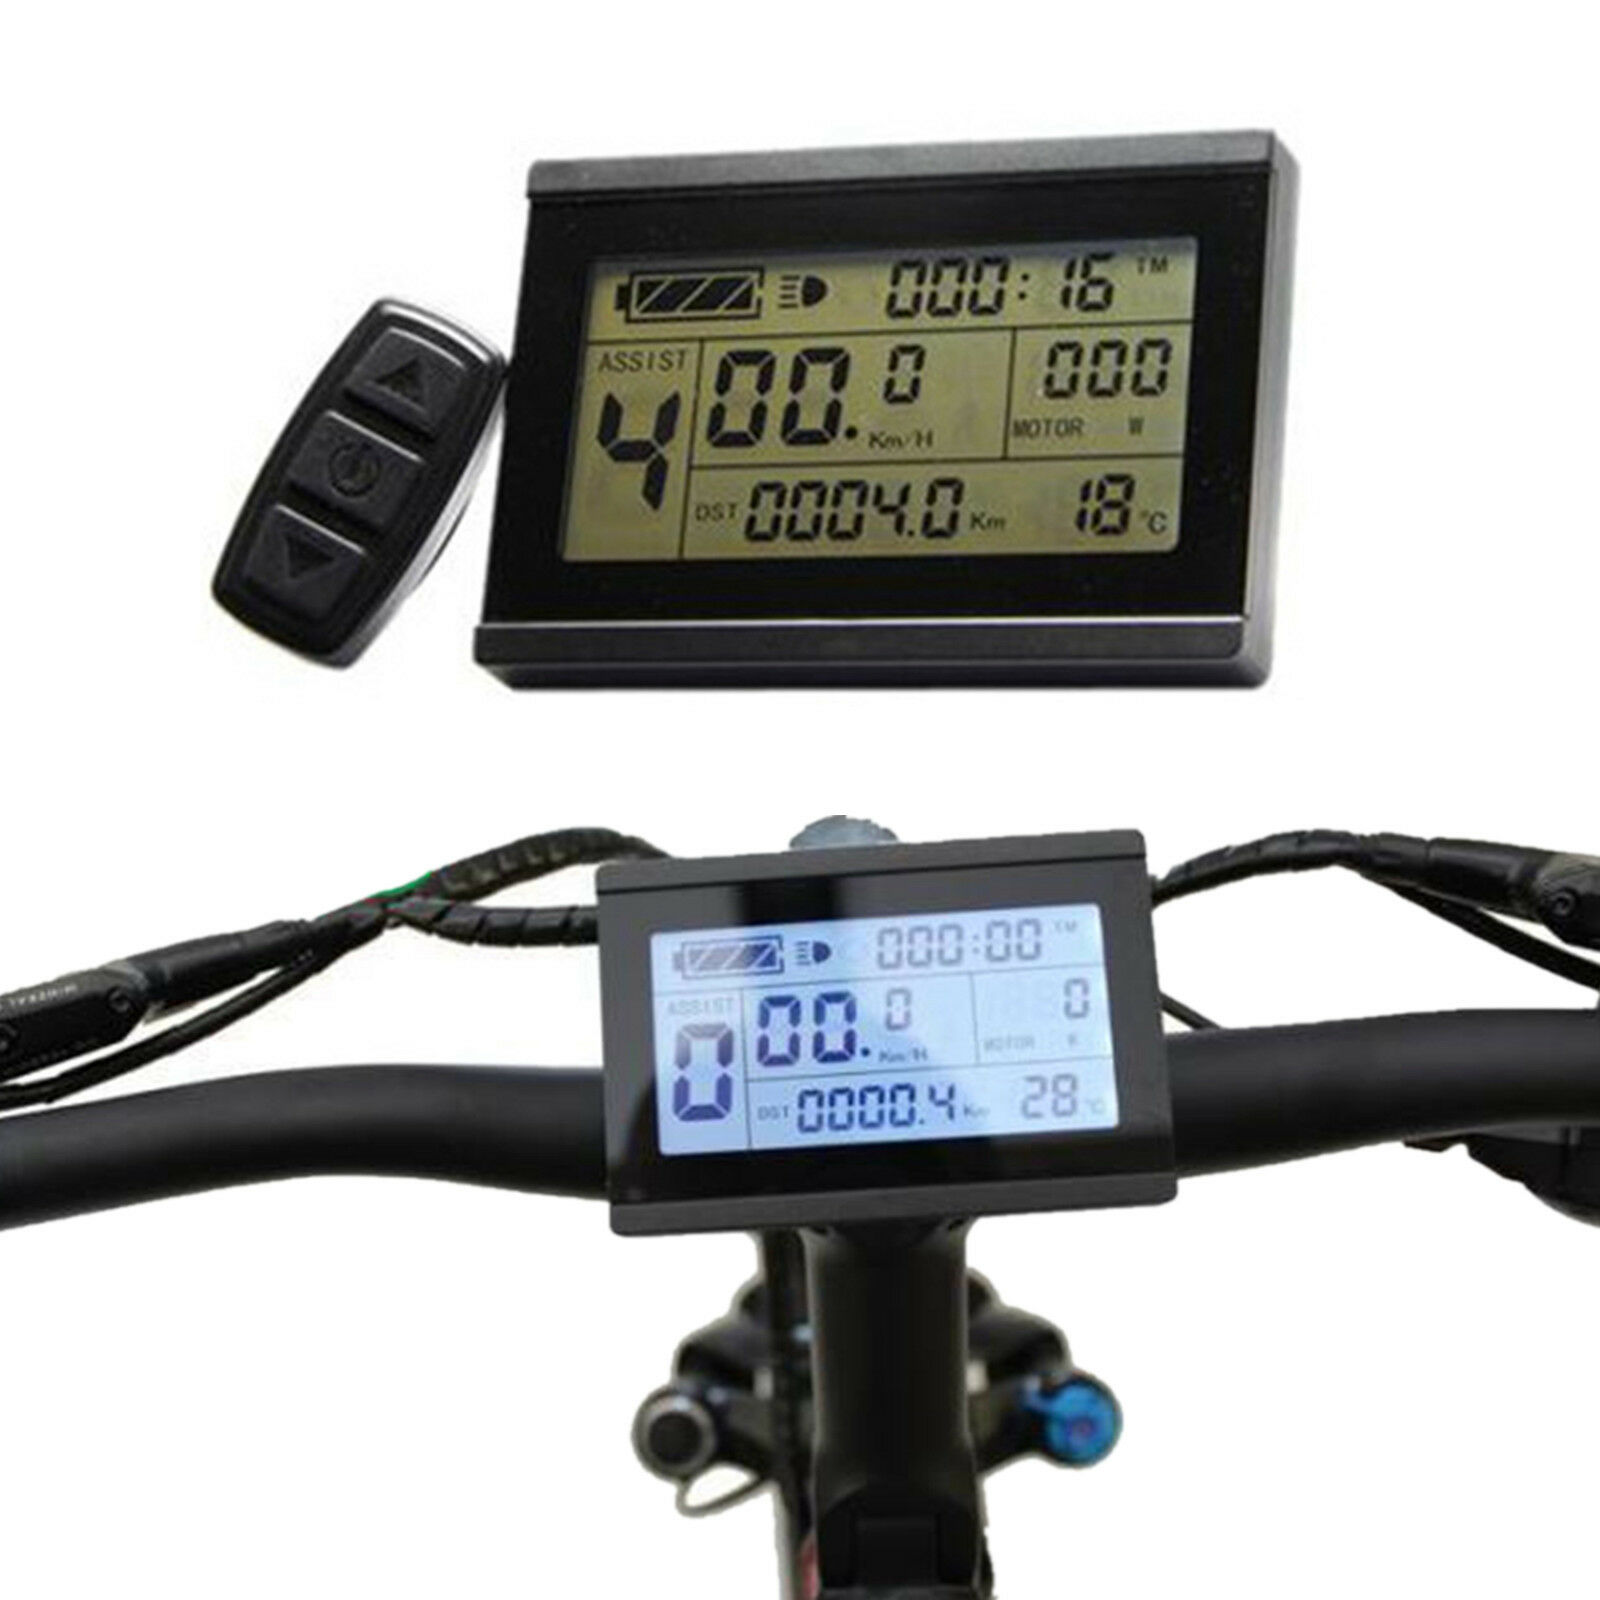 Risunmotor 24-48V KT LCD3 Display Meter Control Panel For Electric Bicycle eBike